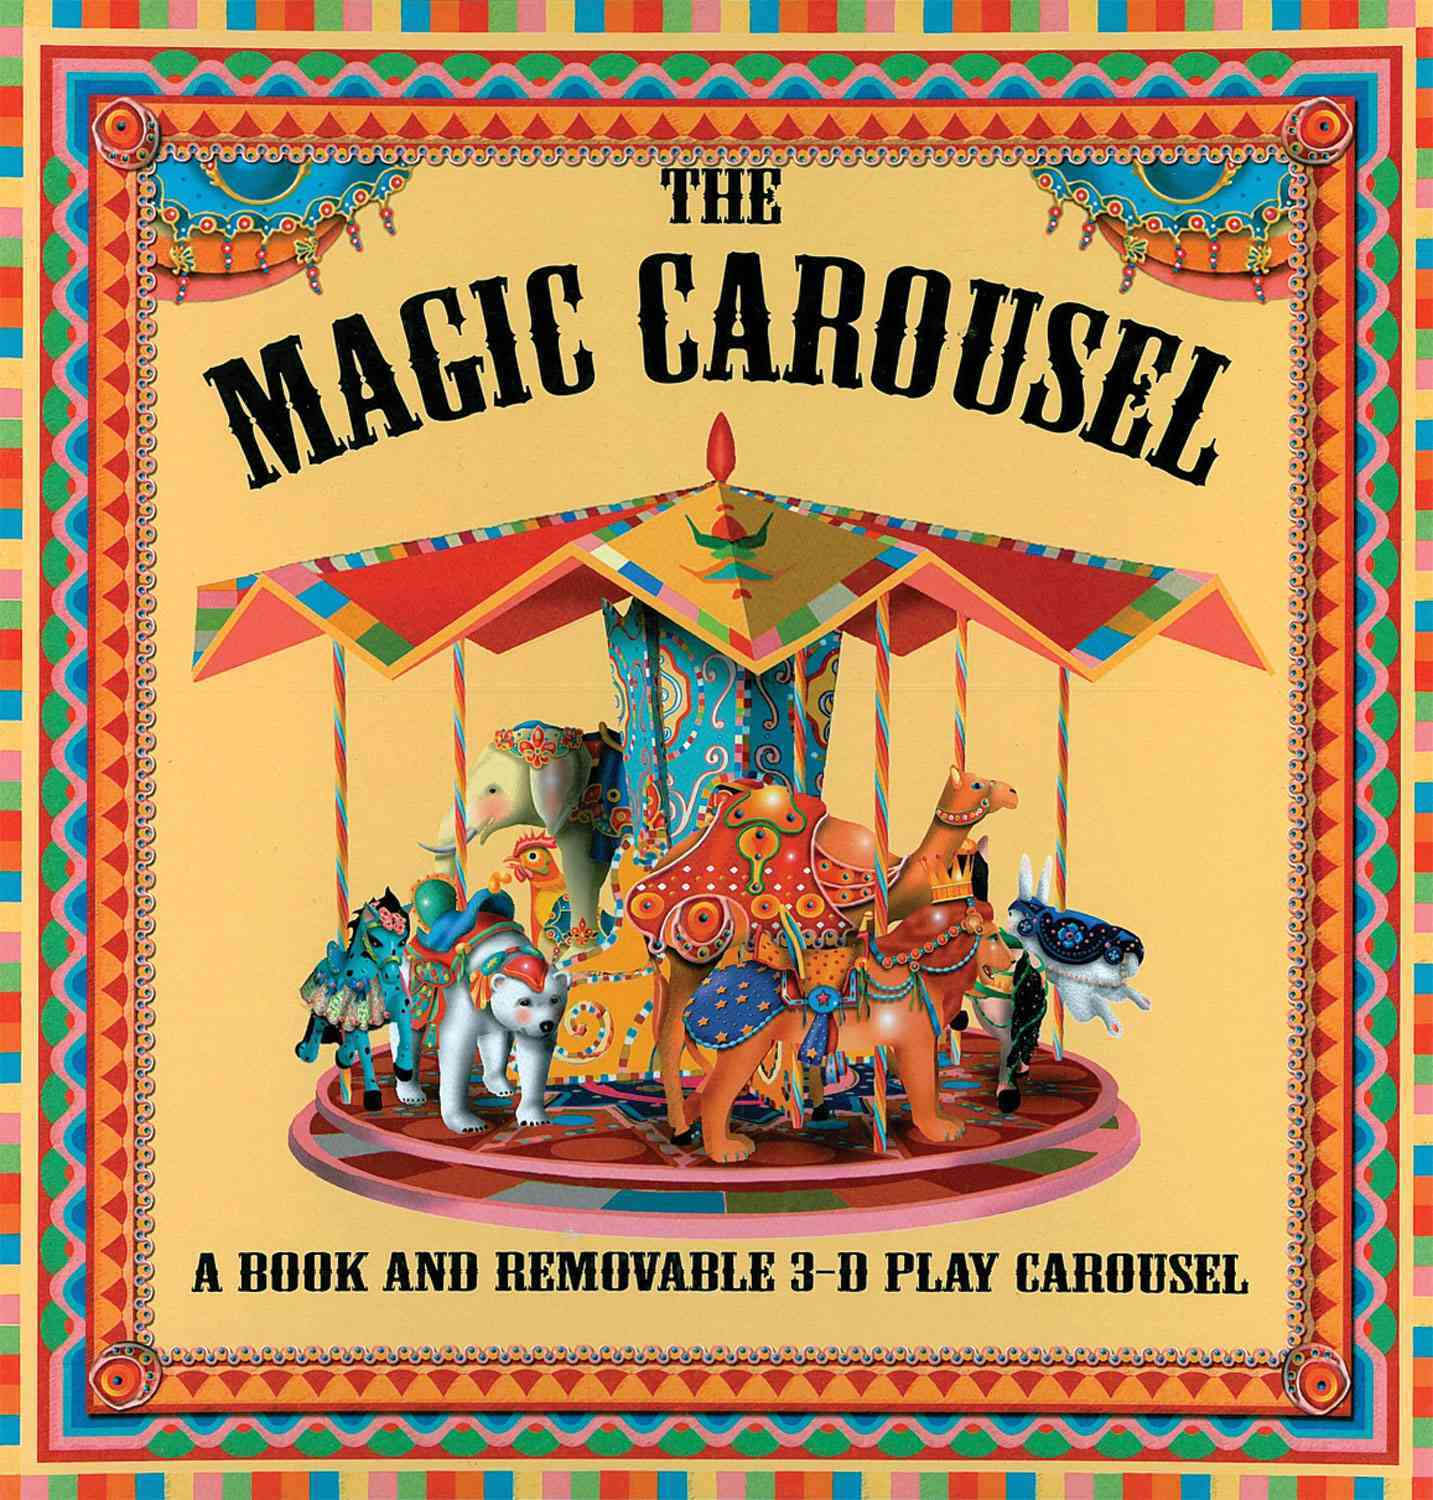 The Magic Carousel: A Book and Removable 3-D Play Carousel (Hardcover)